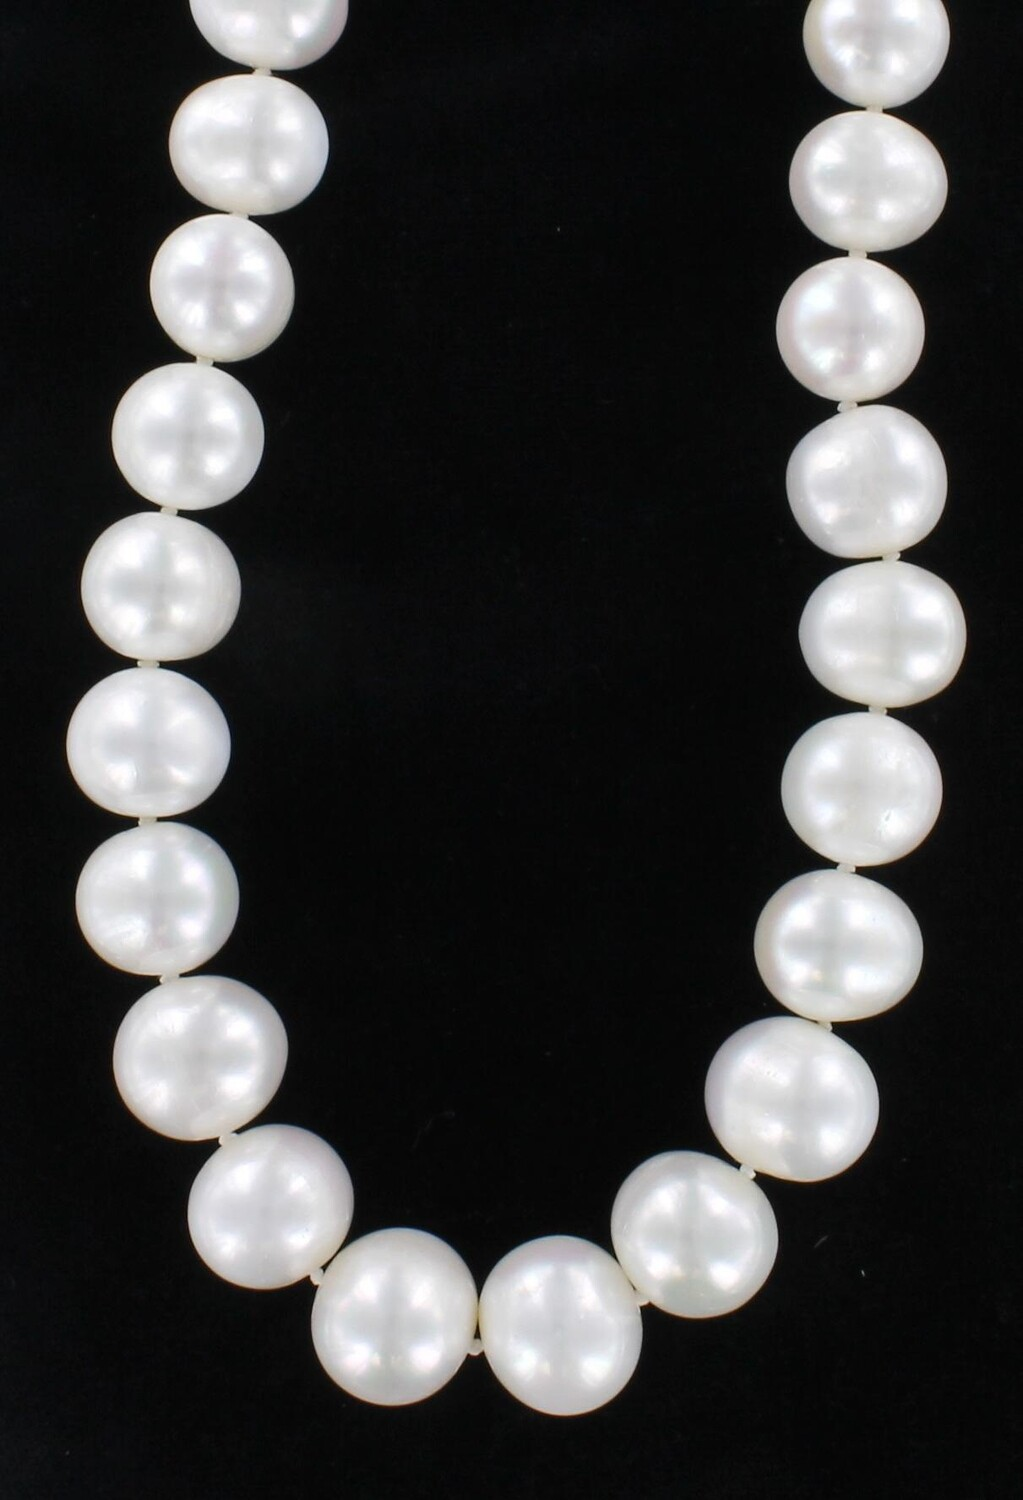 14.5 MM PEARL NECKLACE